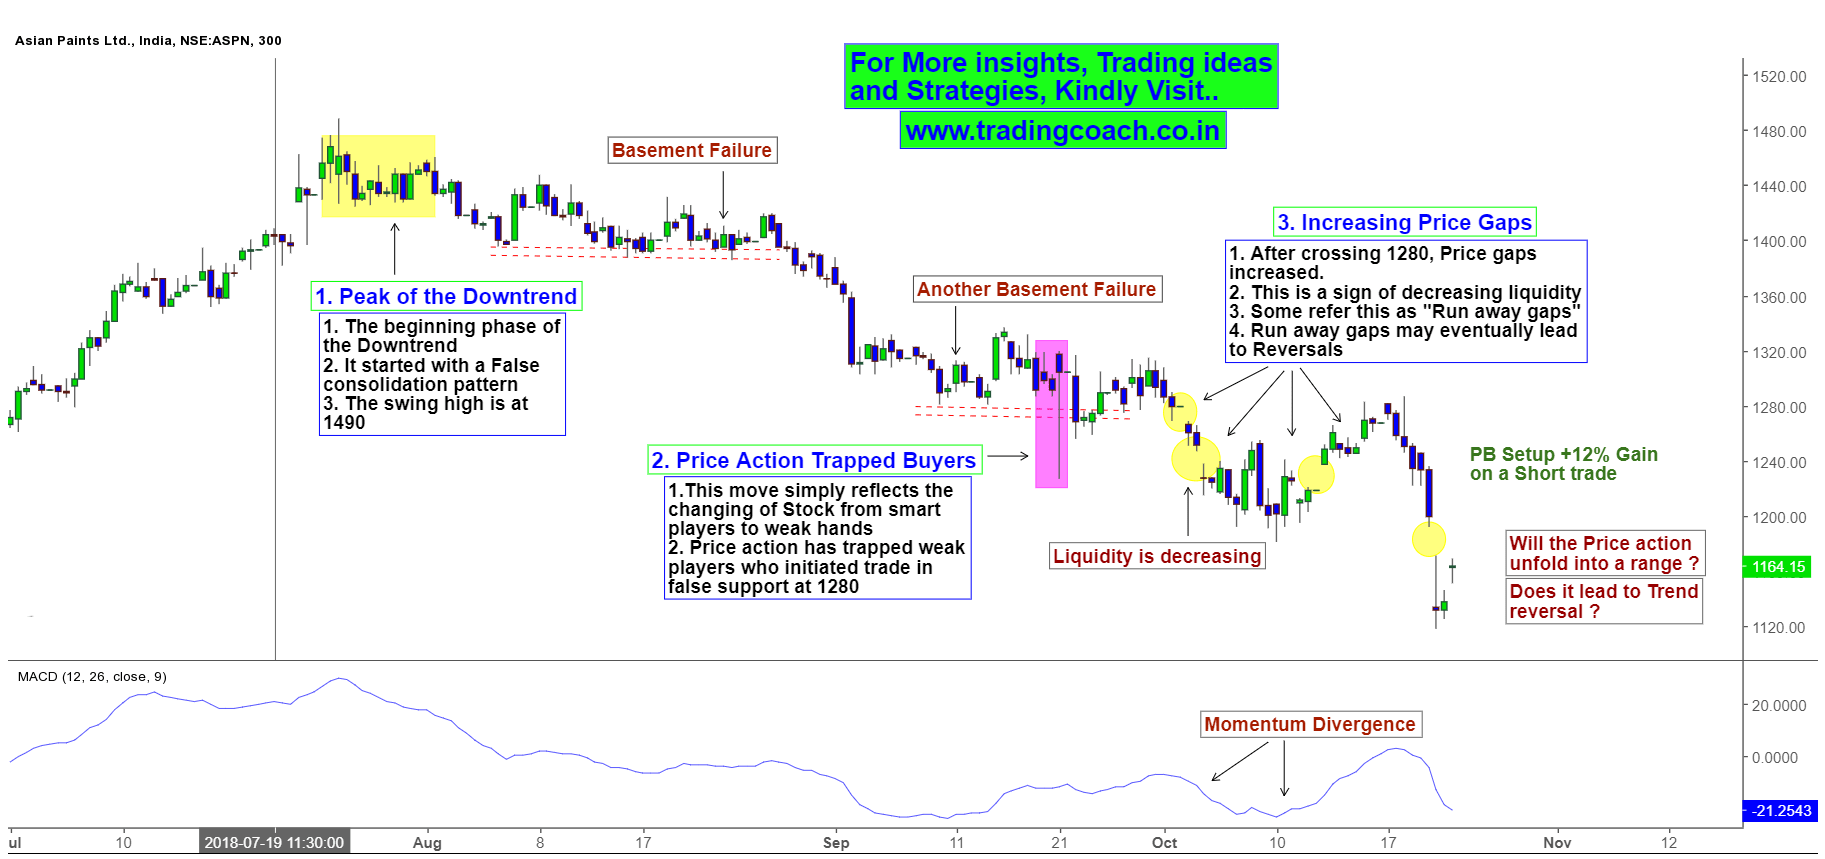 Asian Paint Share prices - Price action shows Runaway gaps and Momentum divergence